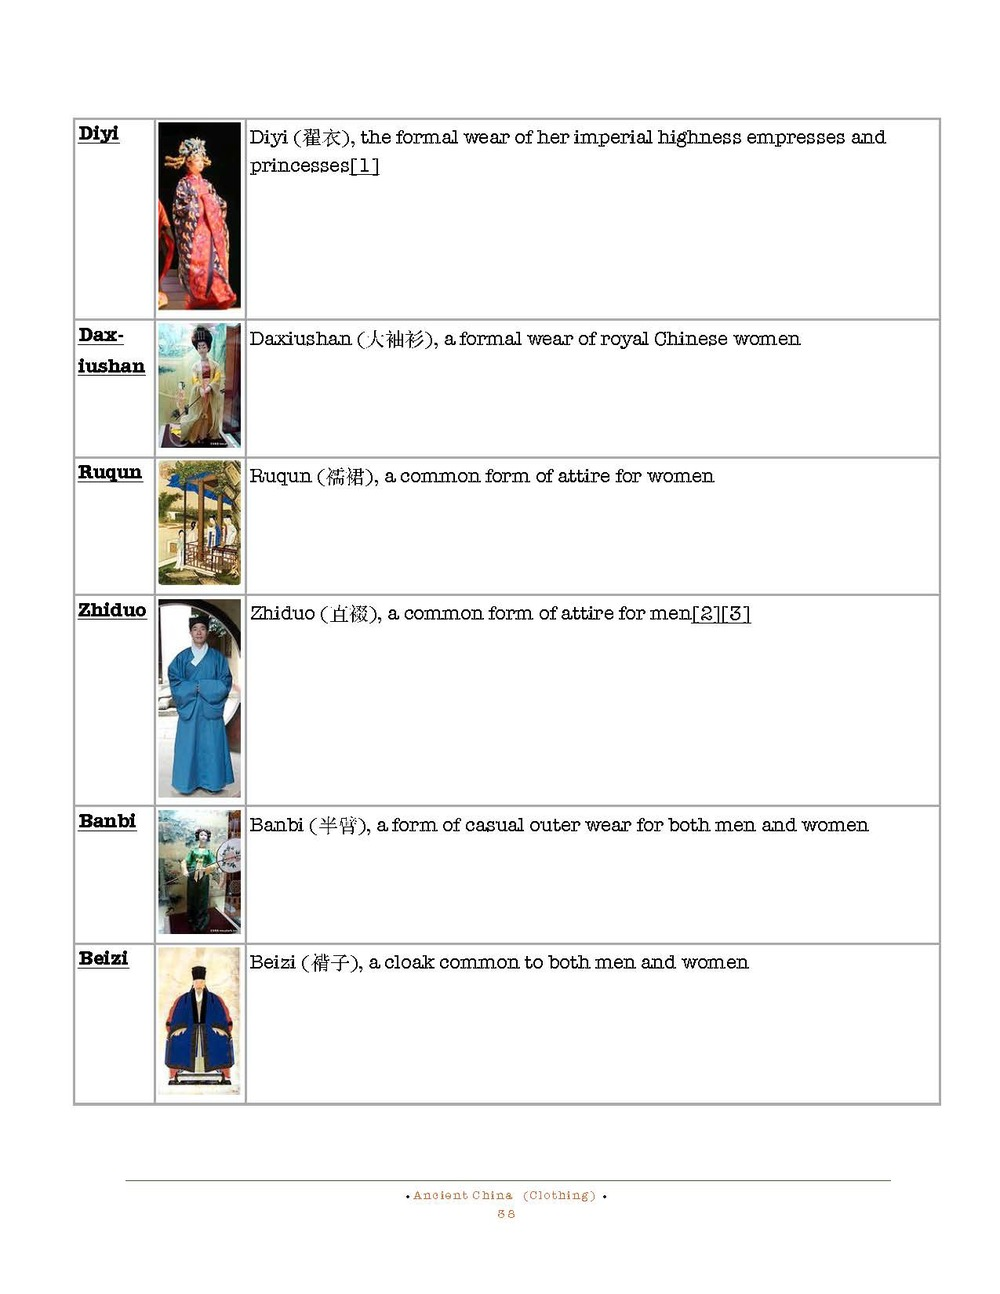 HOCE- Ancient China Notes (clothing)_Page_38.jpg